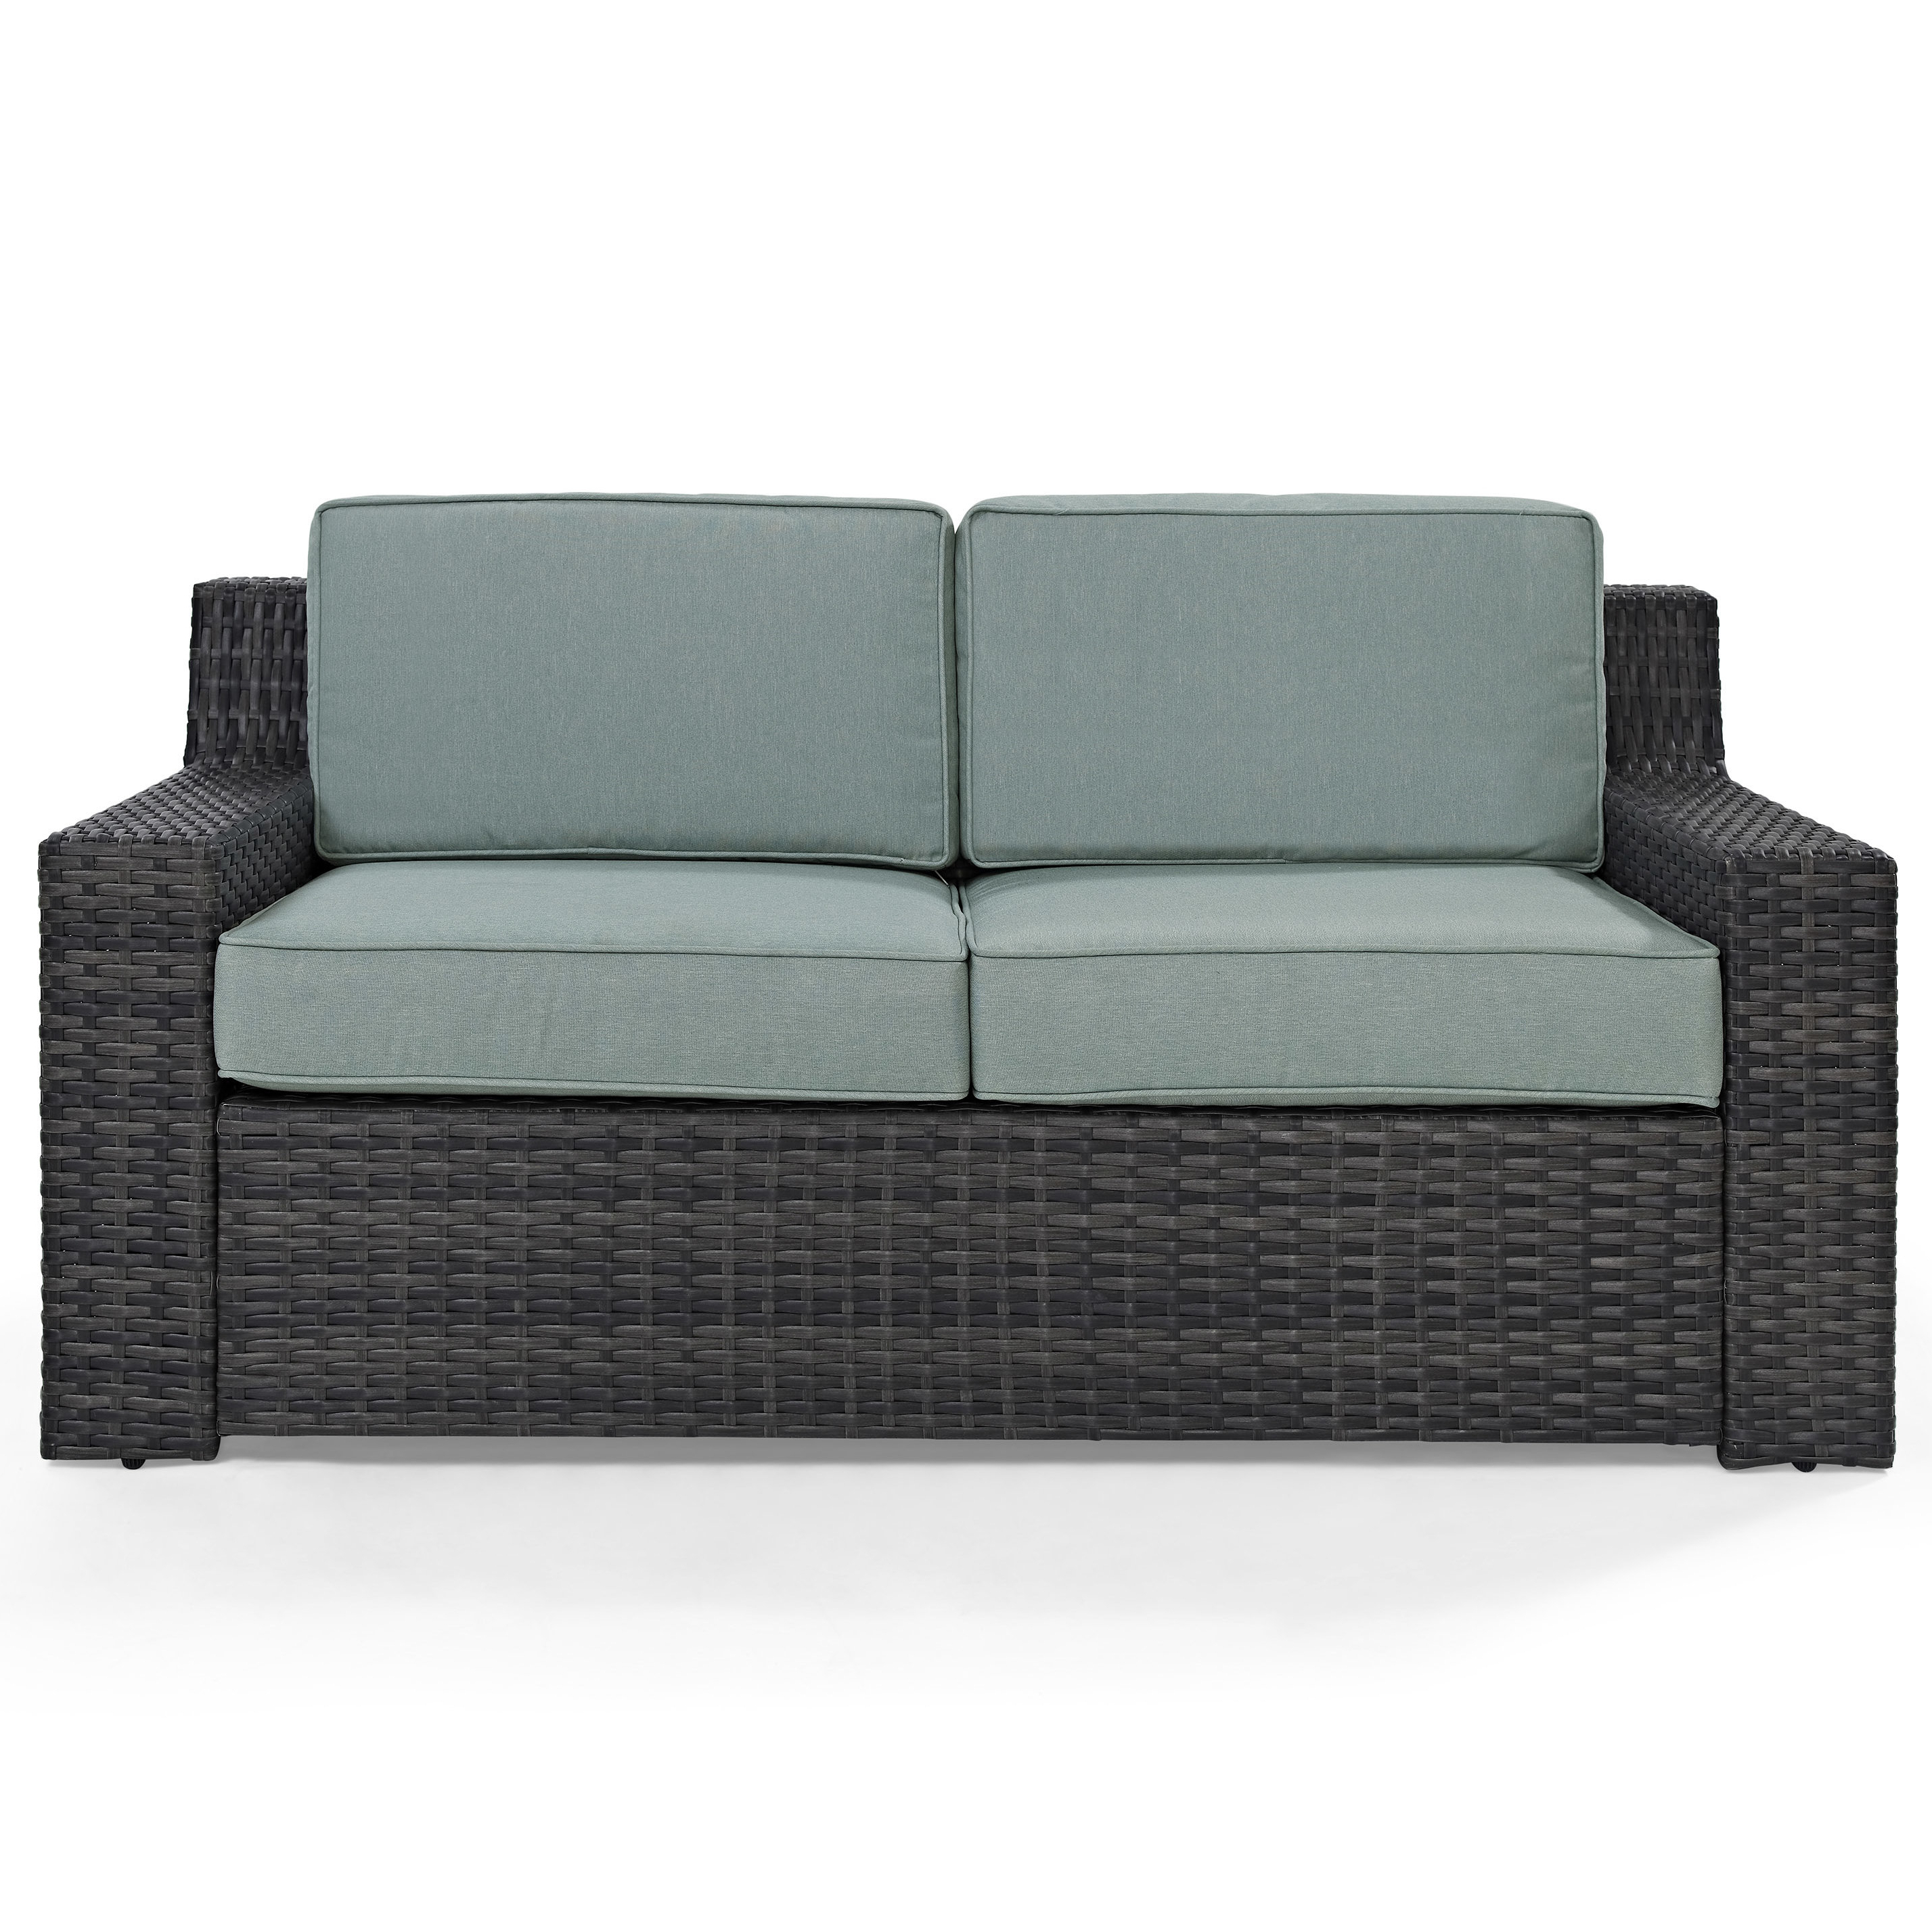 Avadi Outdoor Sofas & Ottomans 3 Piece Set Throughout 2019 Linwood Loveseat With Cushions (View 22 of 25)